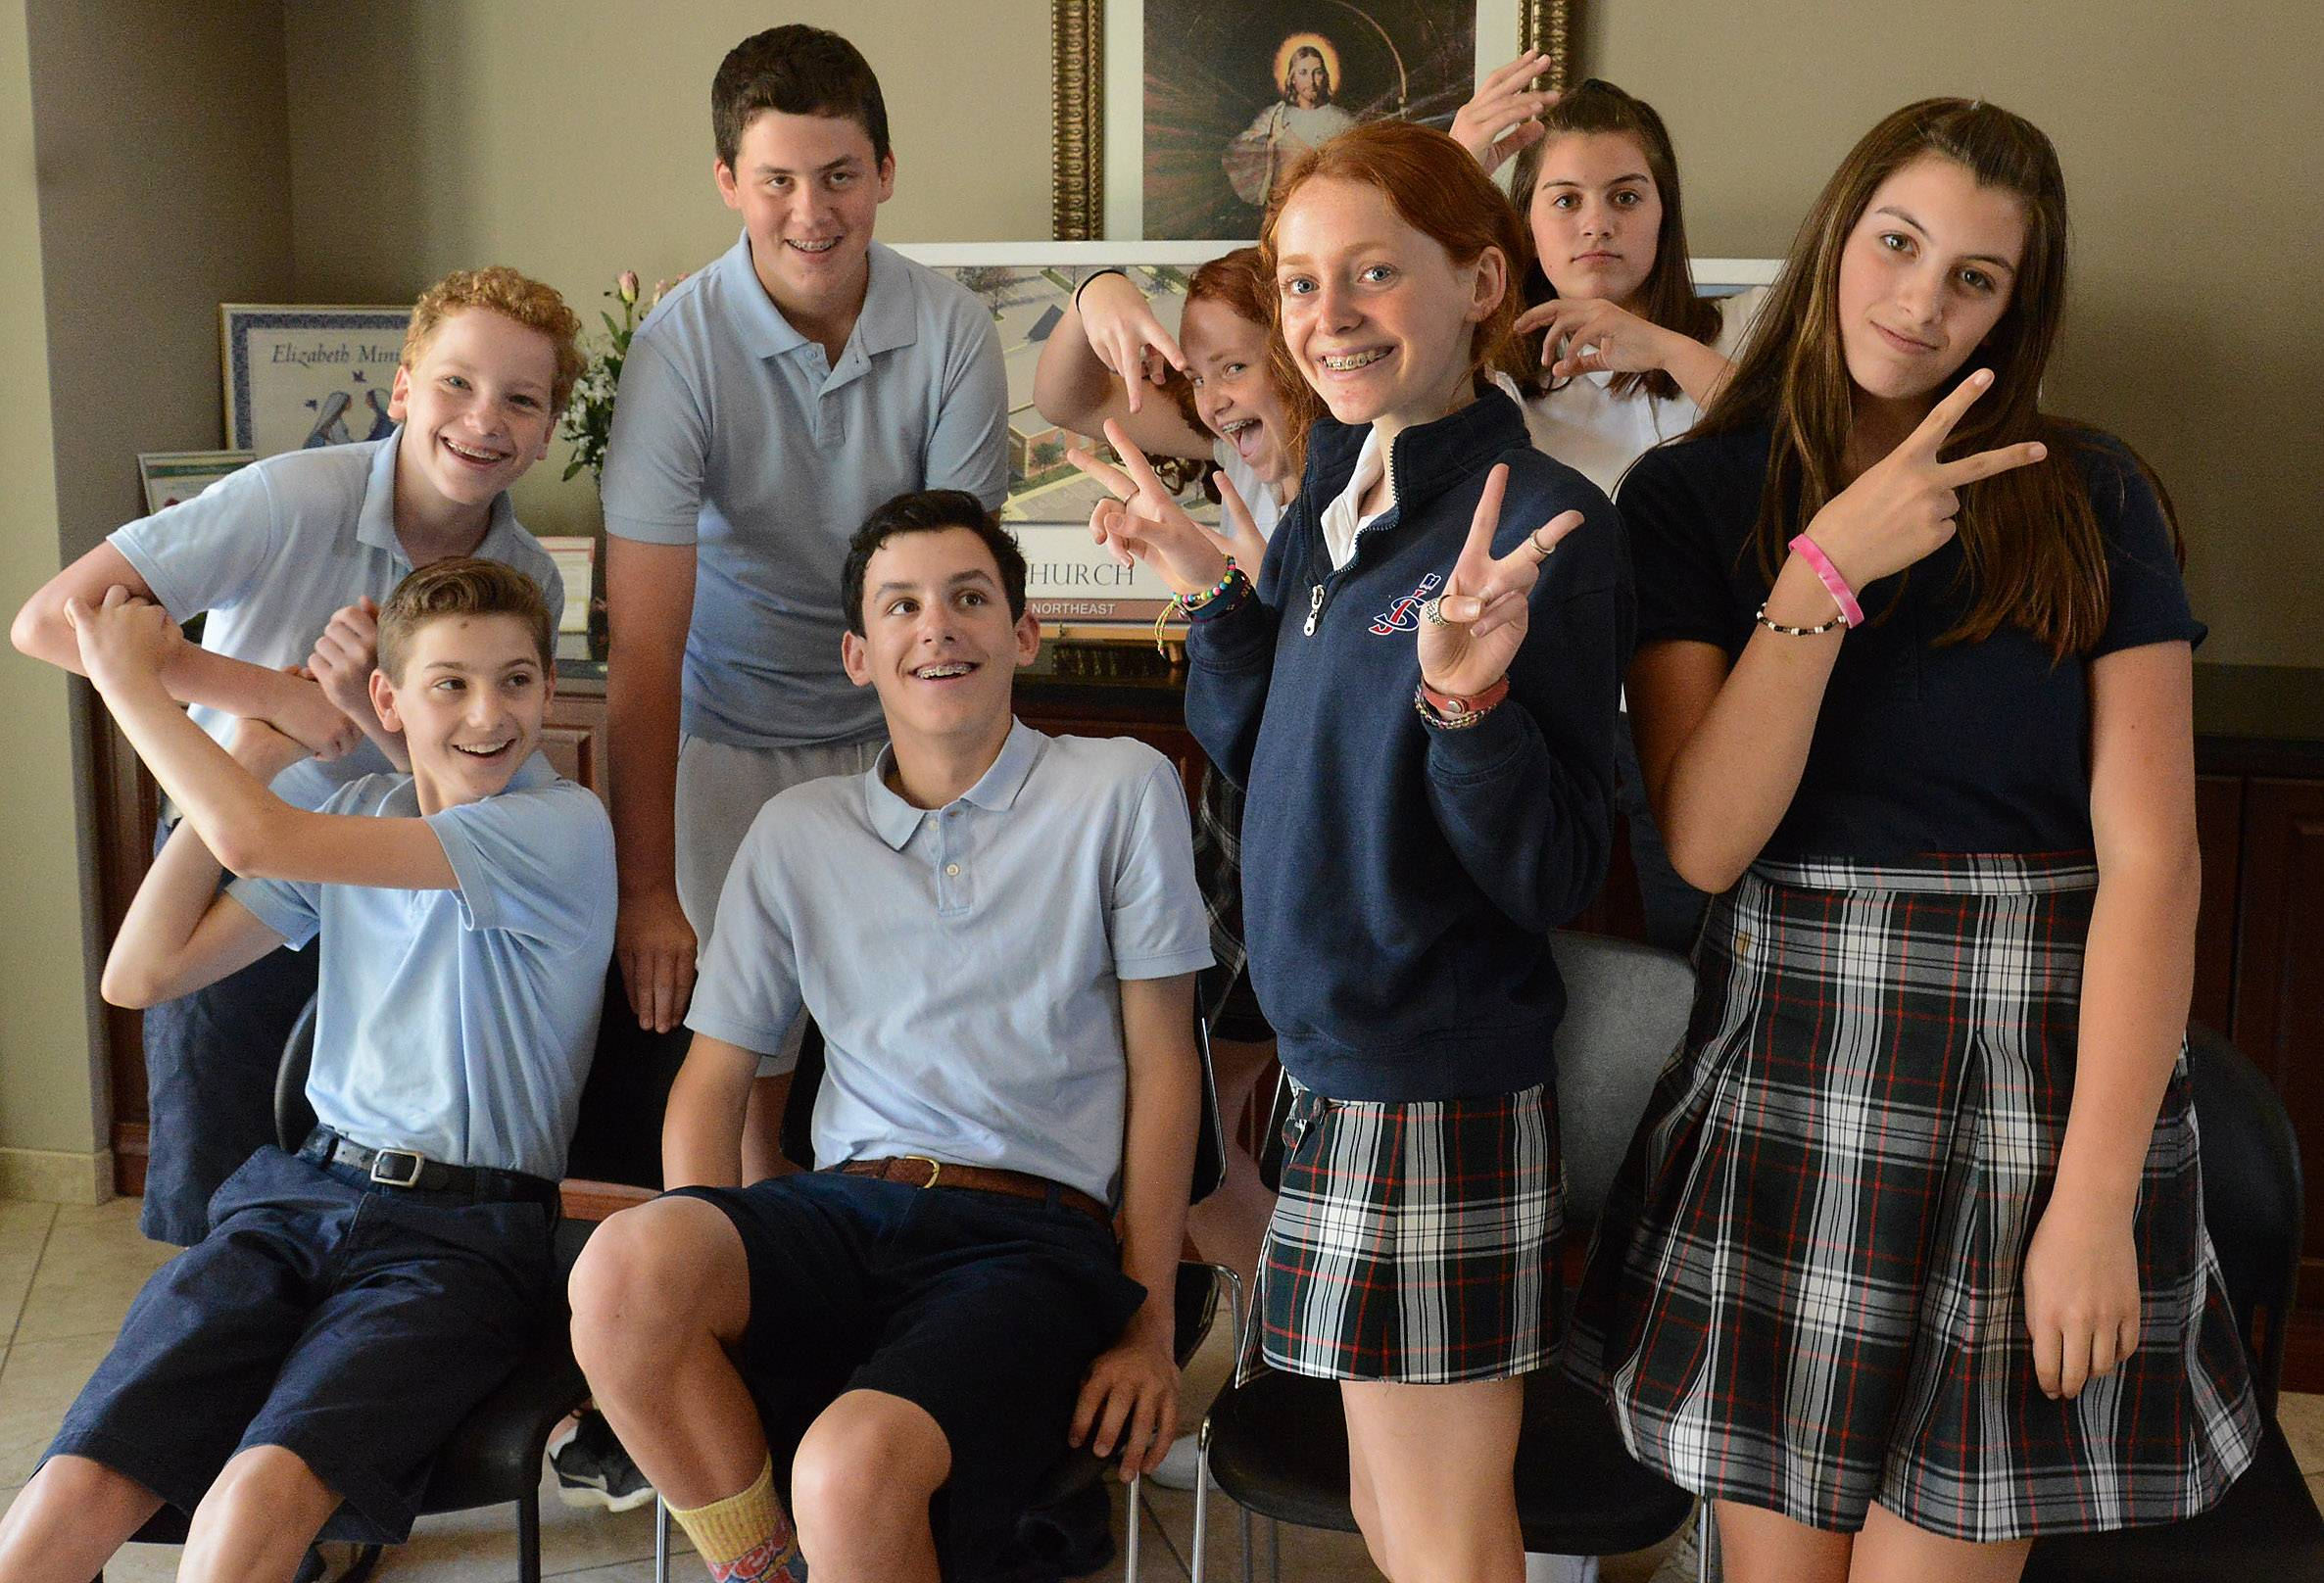 Four sets of twins at St. James School in Arlington Heights are graduating from eighth grade: from left, Matthew (seated) and Lucas Lisowsky, Adam (seated) and Matthew Mysza, Erin (foreground) and Meghan Martin (behind), and Isabella (foreground) and Gabriella (back) Venturini.